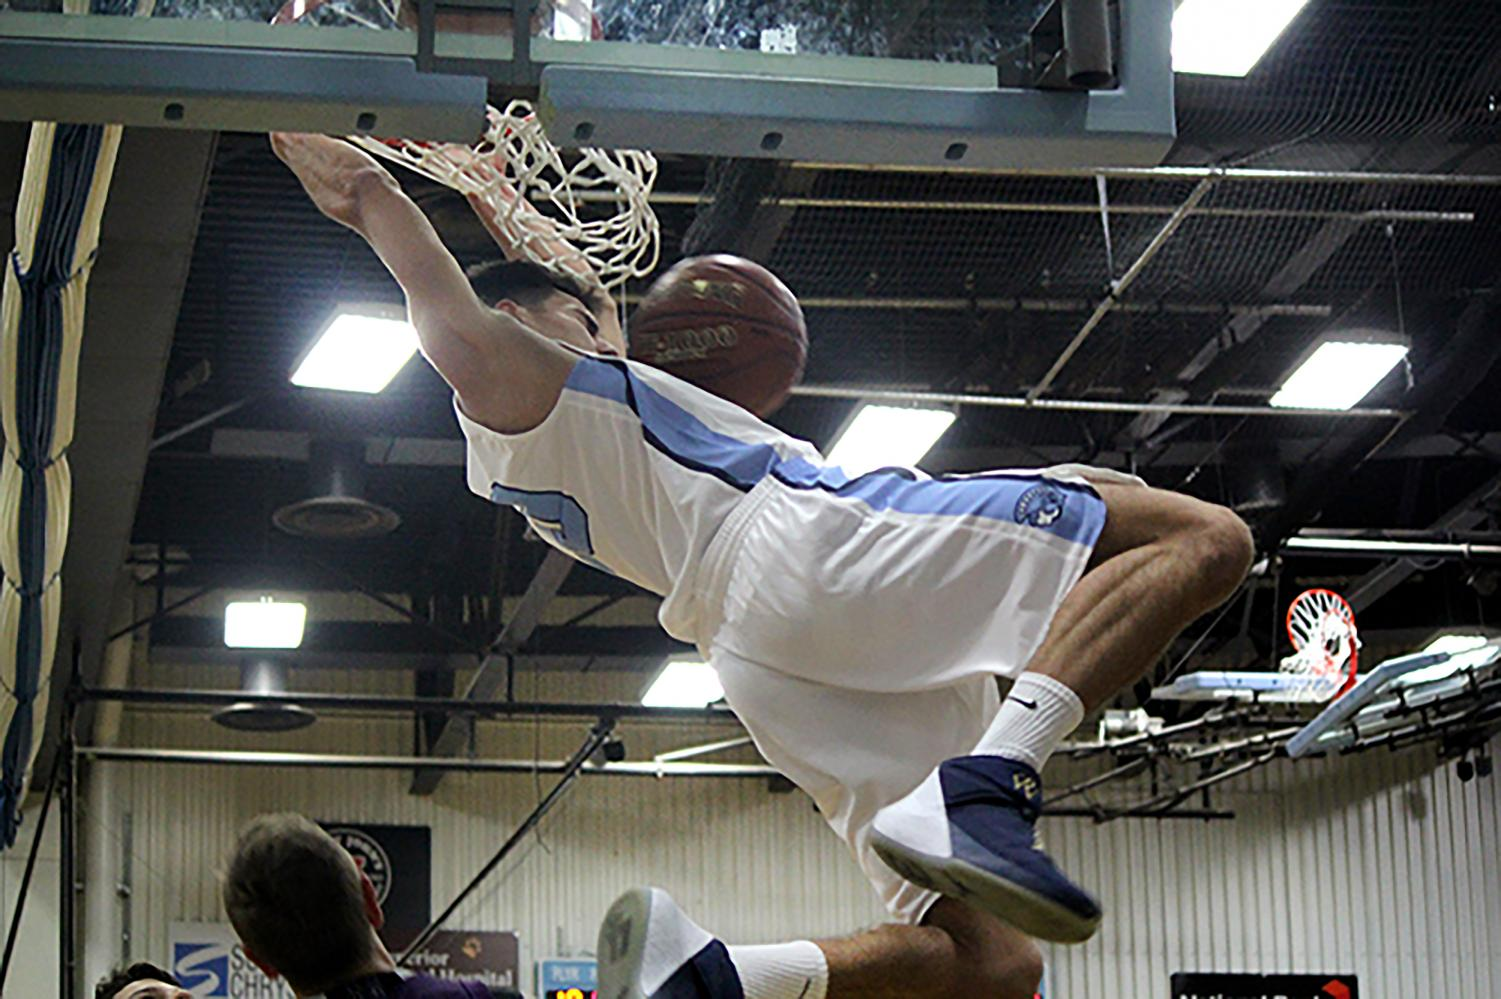 Senior Mason Ackley dunks on Eau Claire Memorial in the Superior High School gym on Tuesday Nov 27.